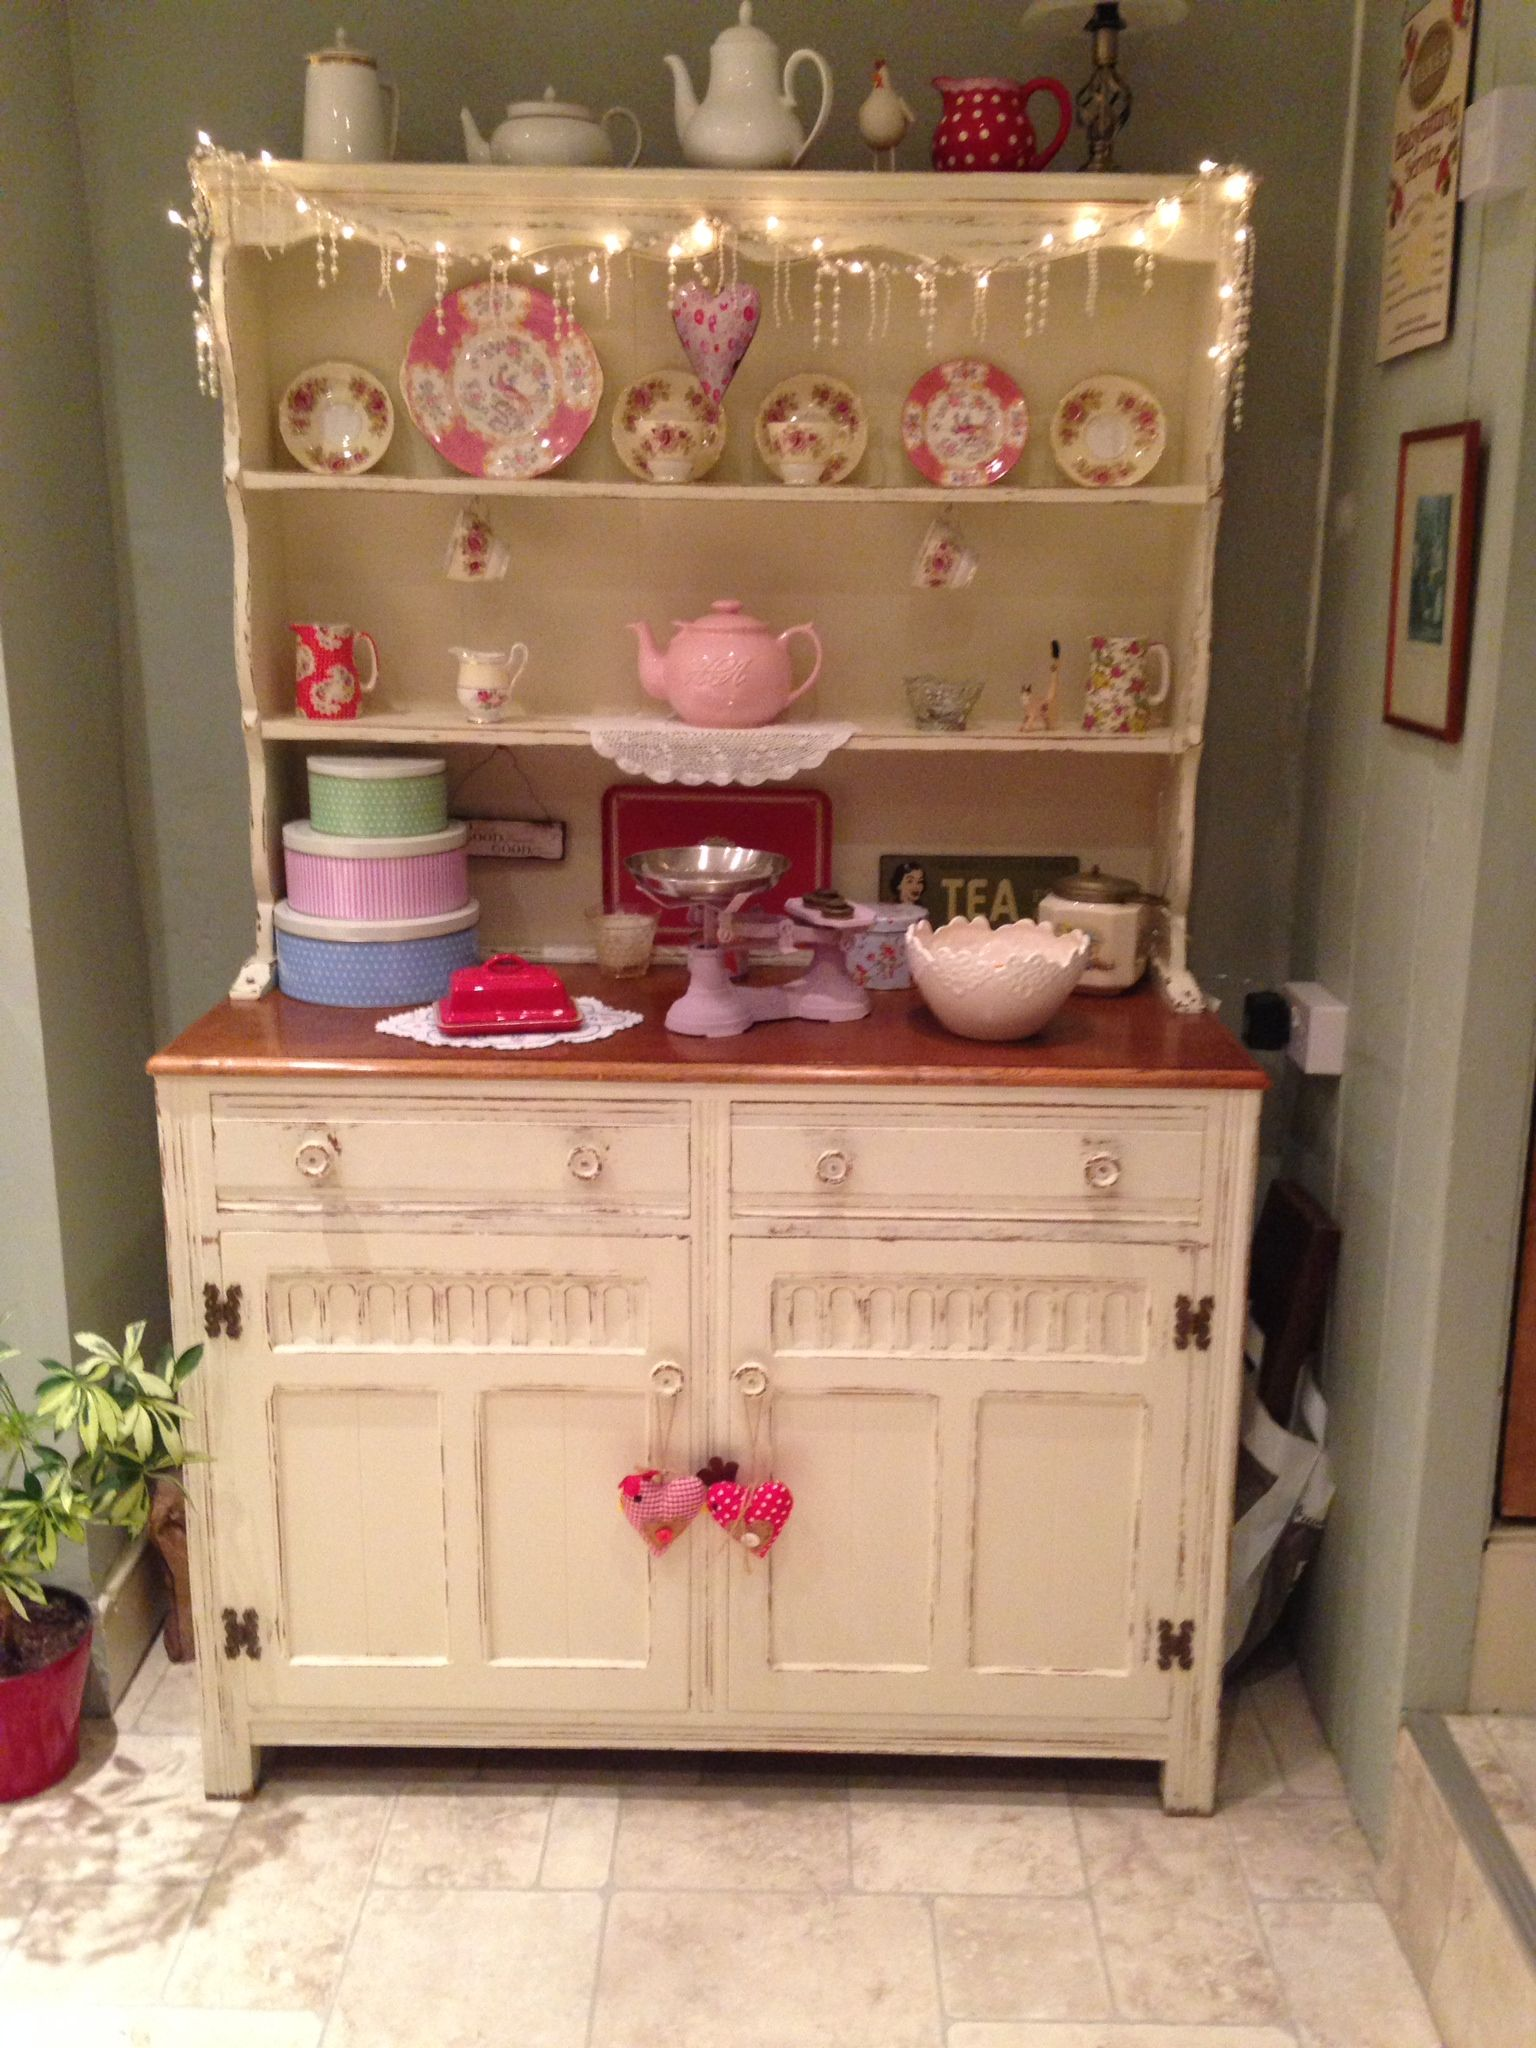 My Welsh Dresser Painted In Farrow Ball Eggshell Great Paint Color Idea